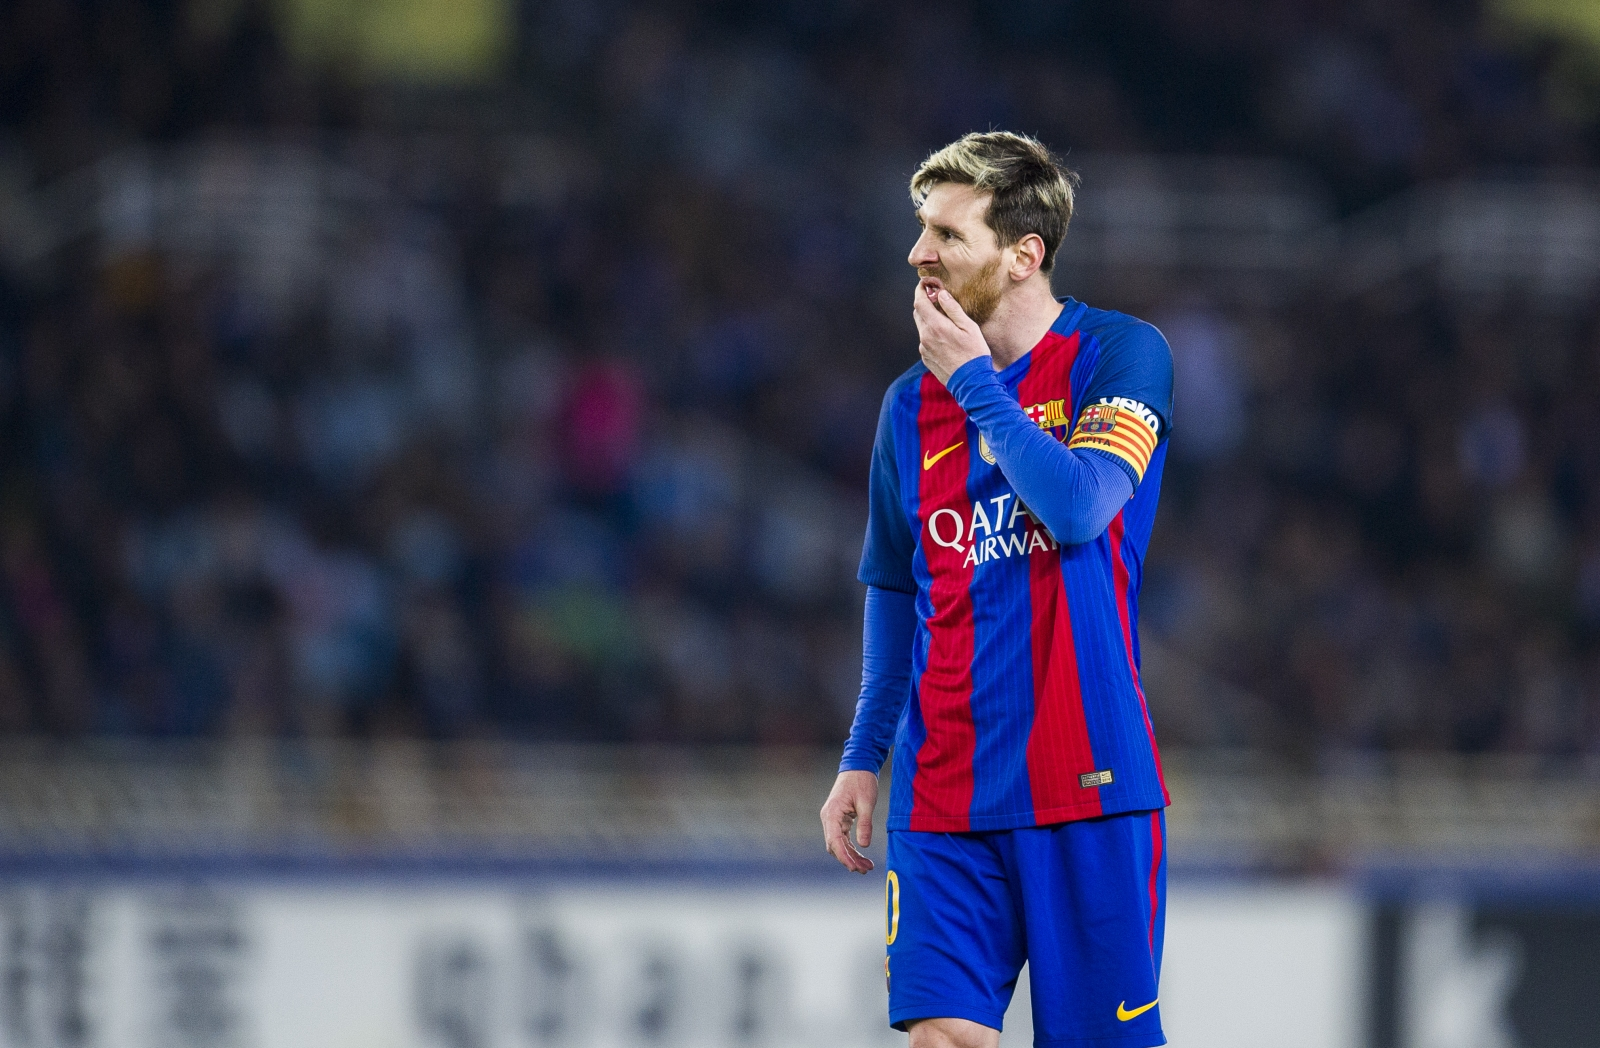 Barca fall six points behind Real Madrid after draw at Real Sociedad